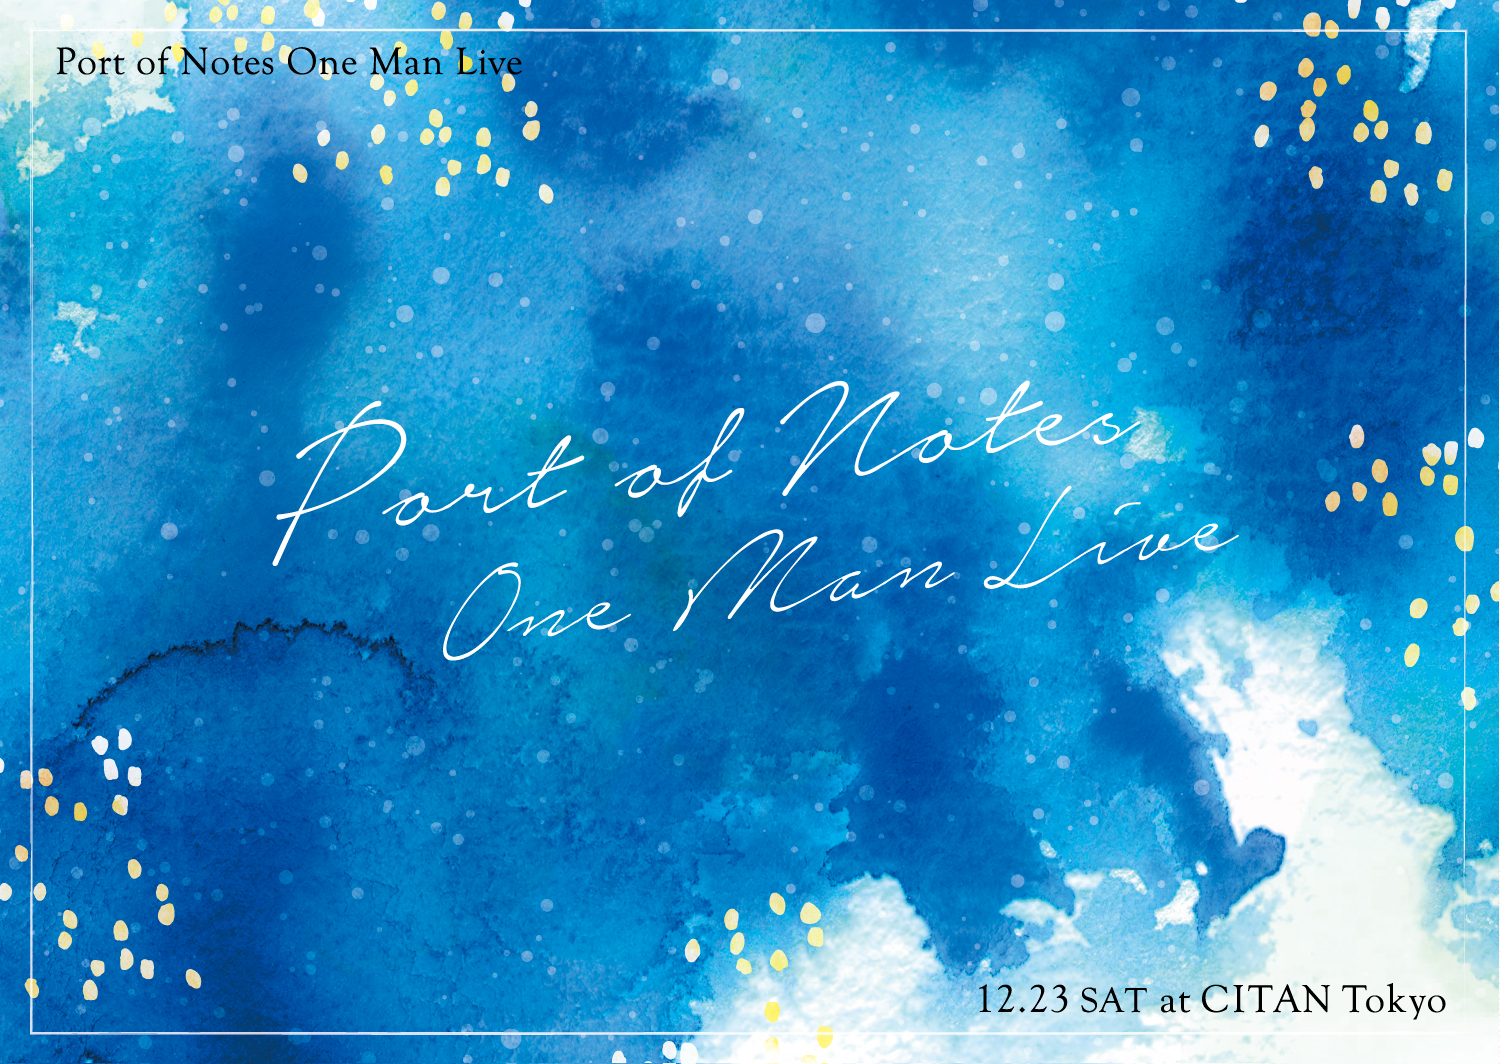 live event port of notes one man live 開催 citan